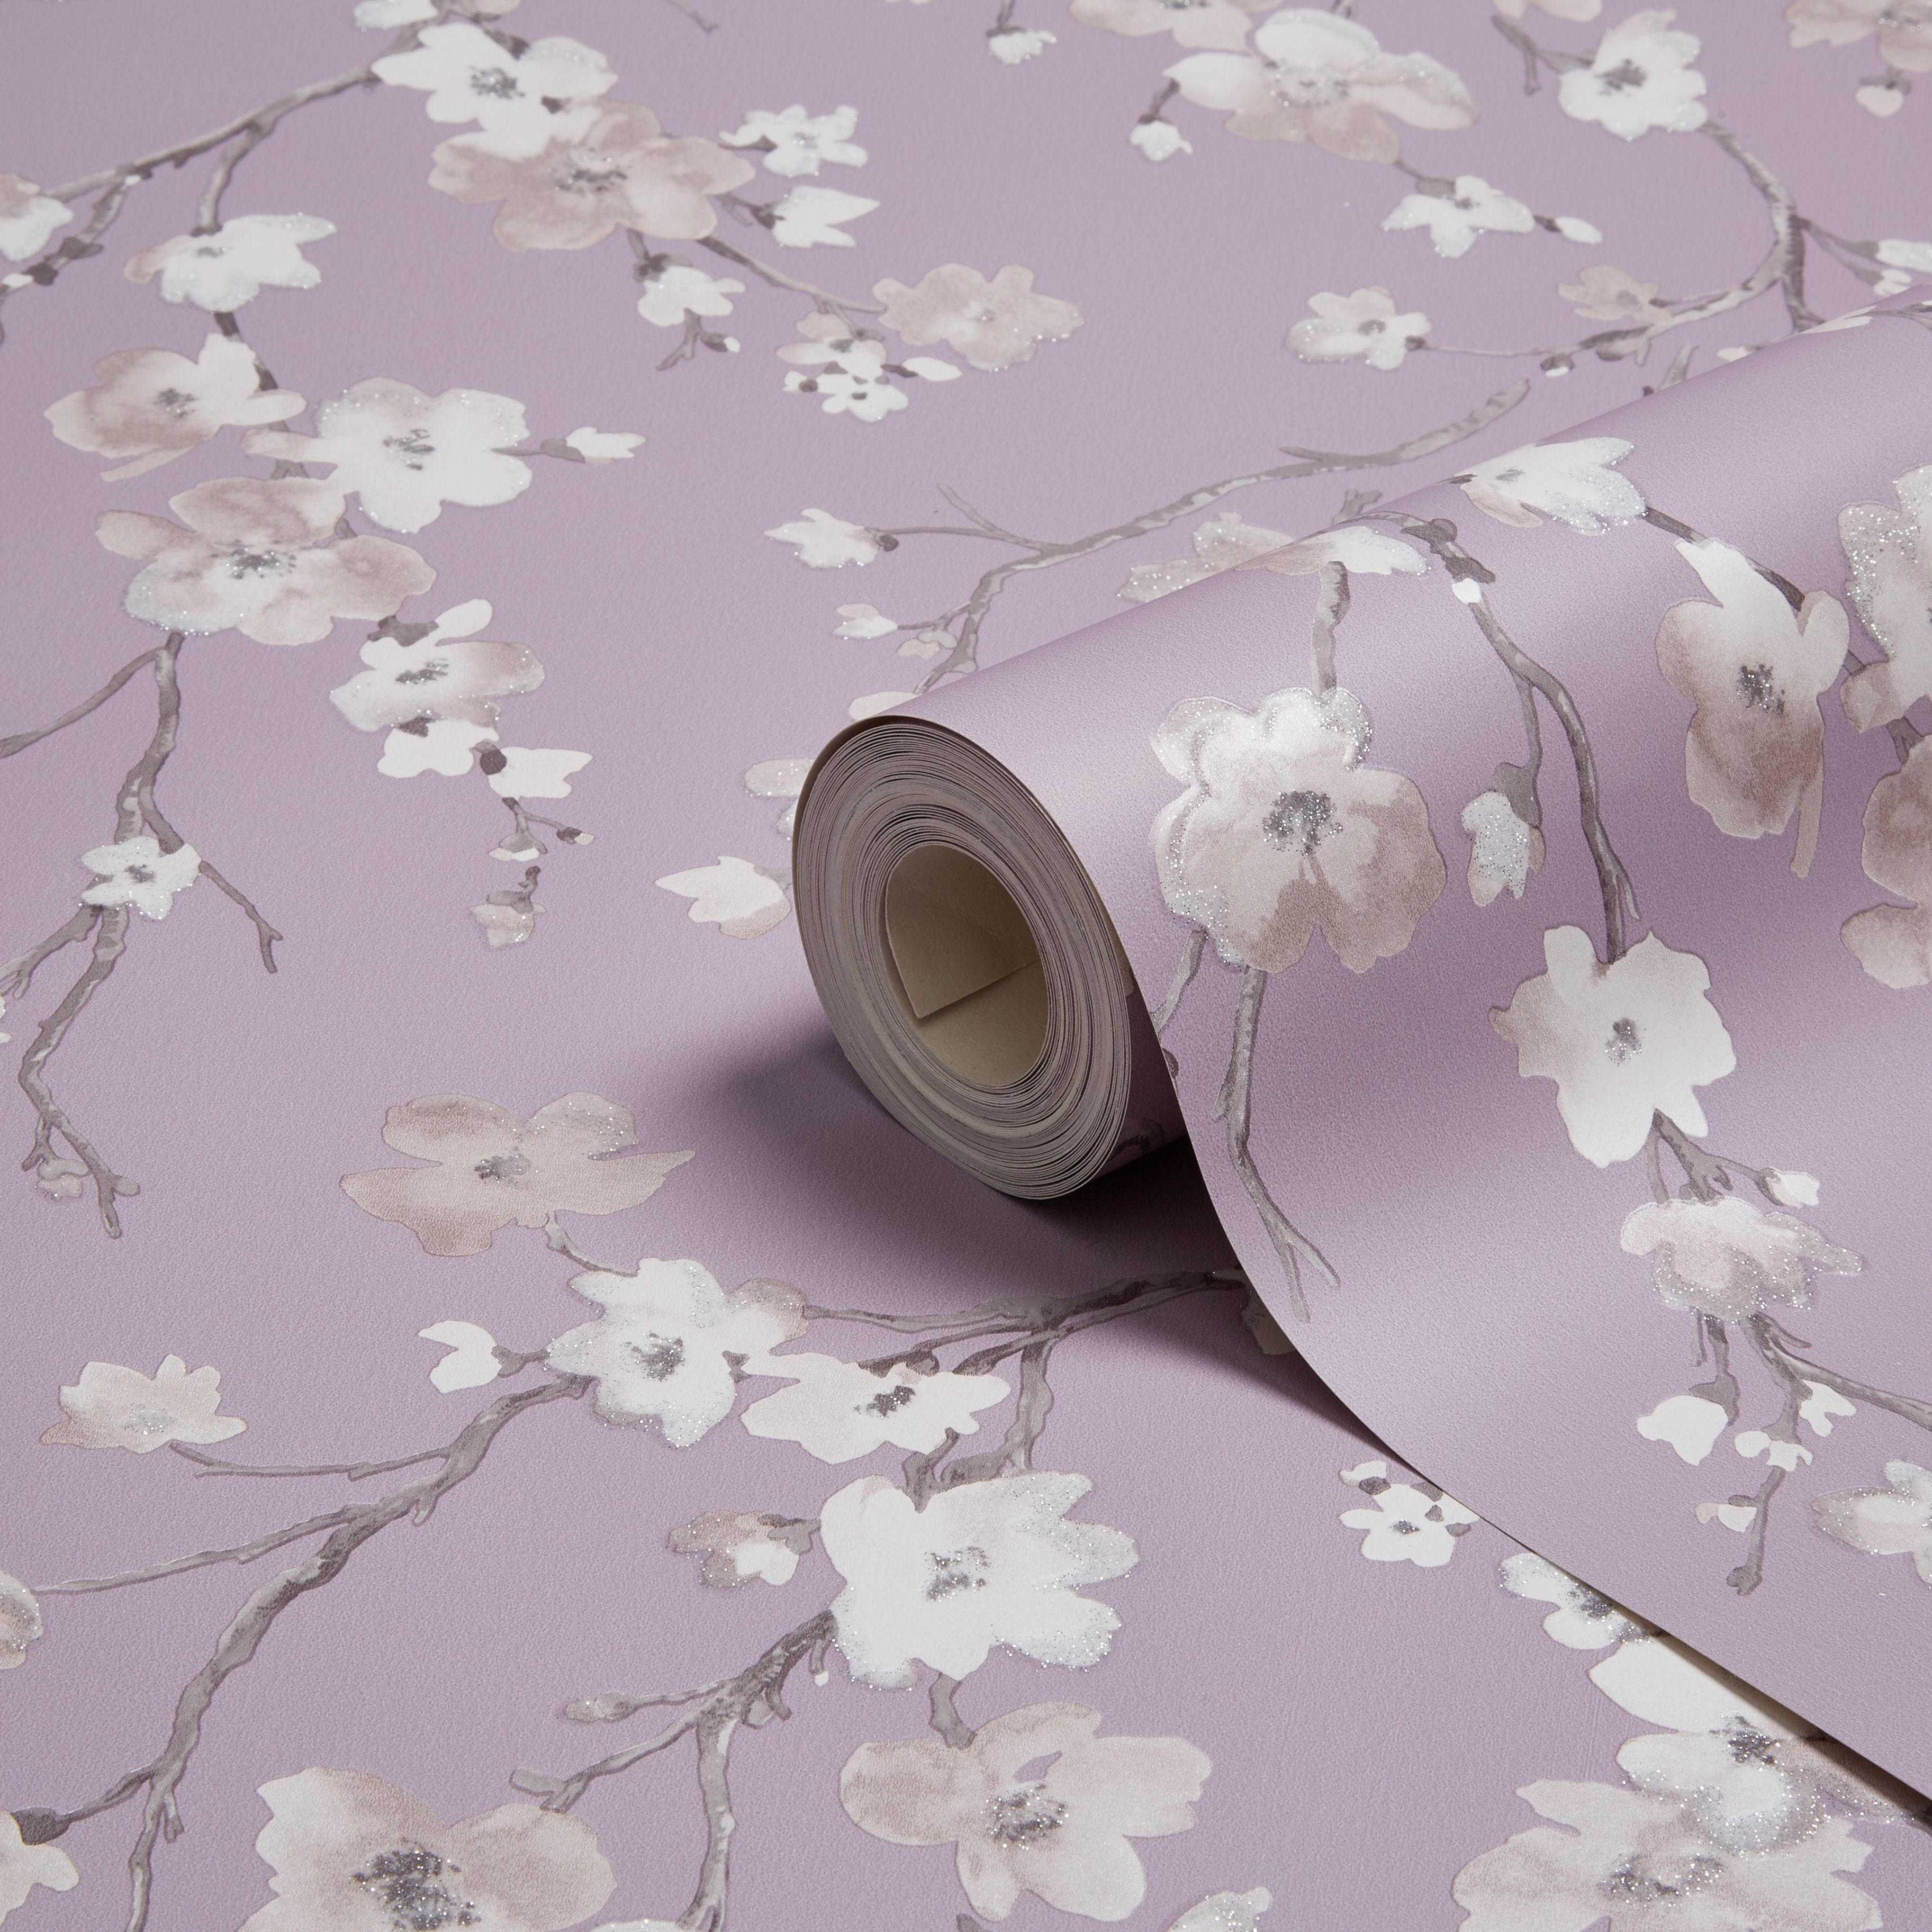 Diy supplies accessories diy at b q - Arthouse Sophie Conran Blossom Wisteria Floral Glitter Wallpaper B Q For All Your Home And Garden Supplies And Advice On All The Latest Diy Trends